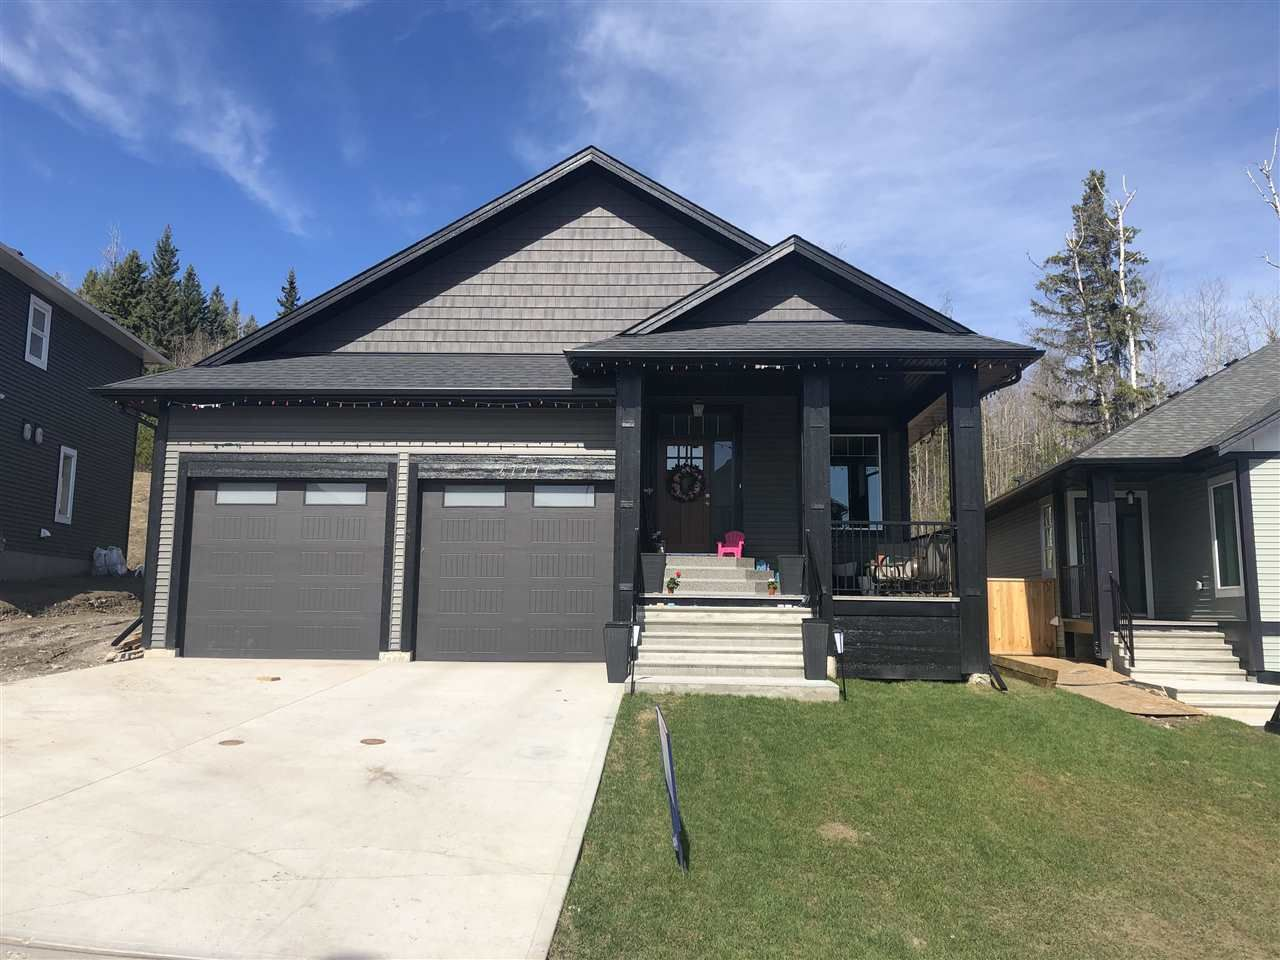 Main Photo: 4777 PARKSIDE Drive in Prince George: Charella/Starlane House for sale (PG City South (Zone 74))  : MLS®# R2461863